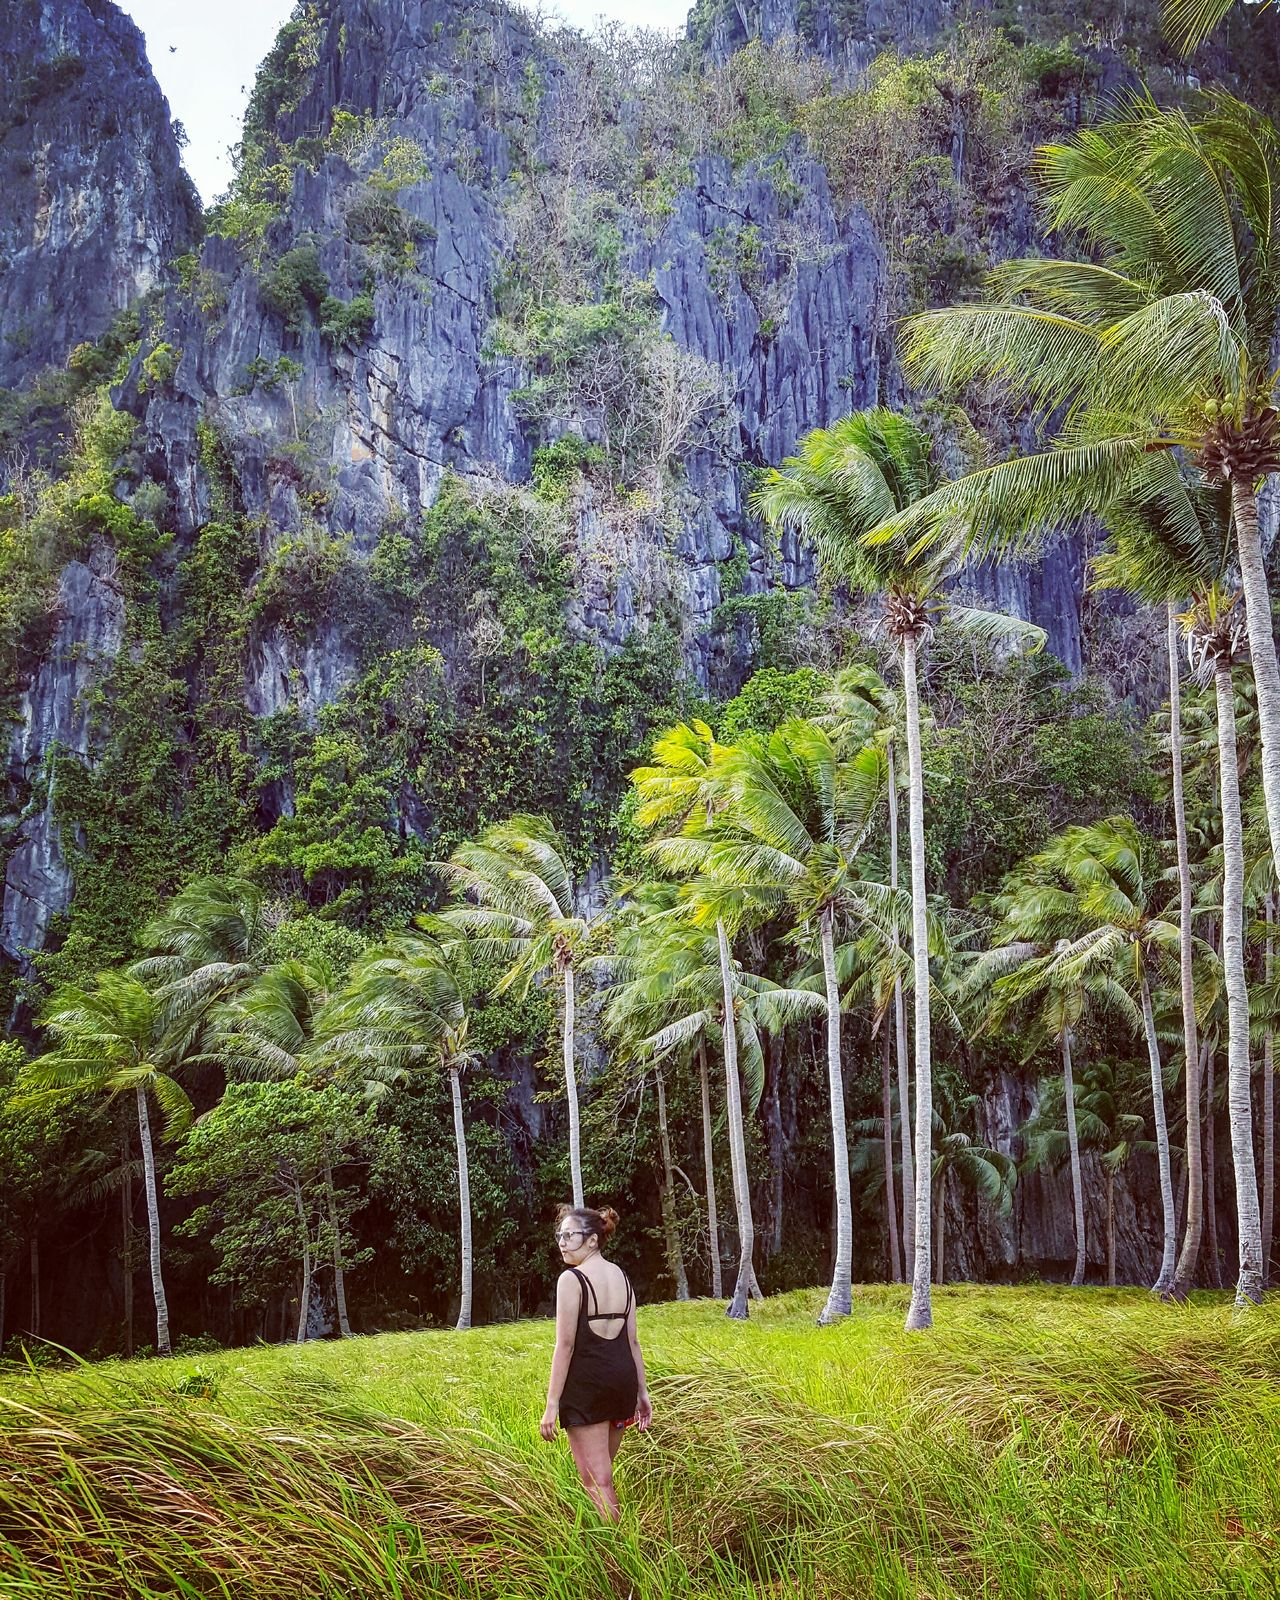 Nature Mountains Palm Trees Philippines Itsmorefuninthephilippines Green Color Palawan El Nido Grass Grassland Beauty In NatureGrowth Field Green Nature Tree Day Outdoors Travel Tranquility TravelPhilippines Travelph